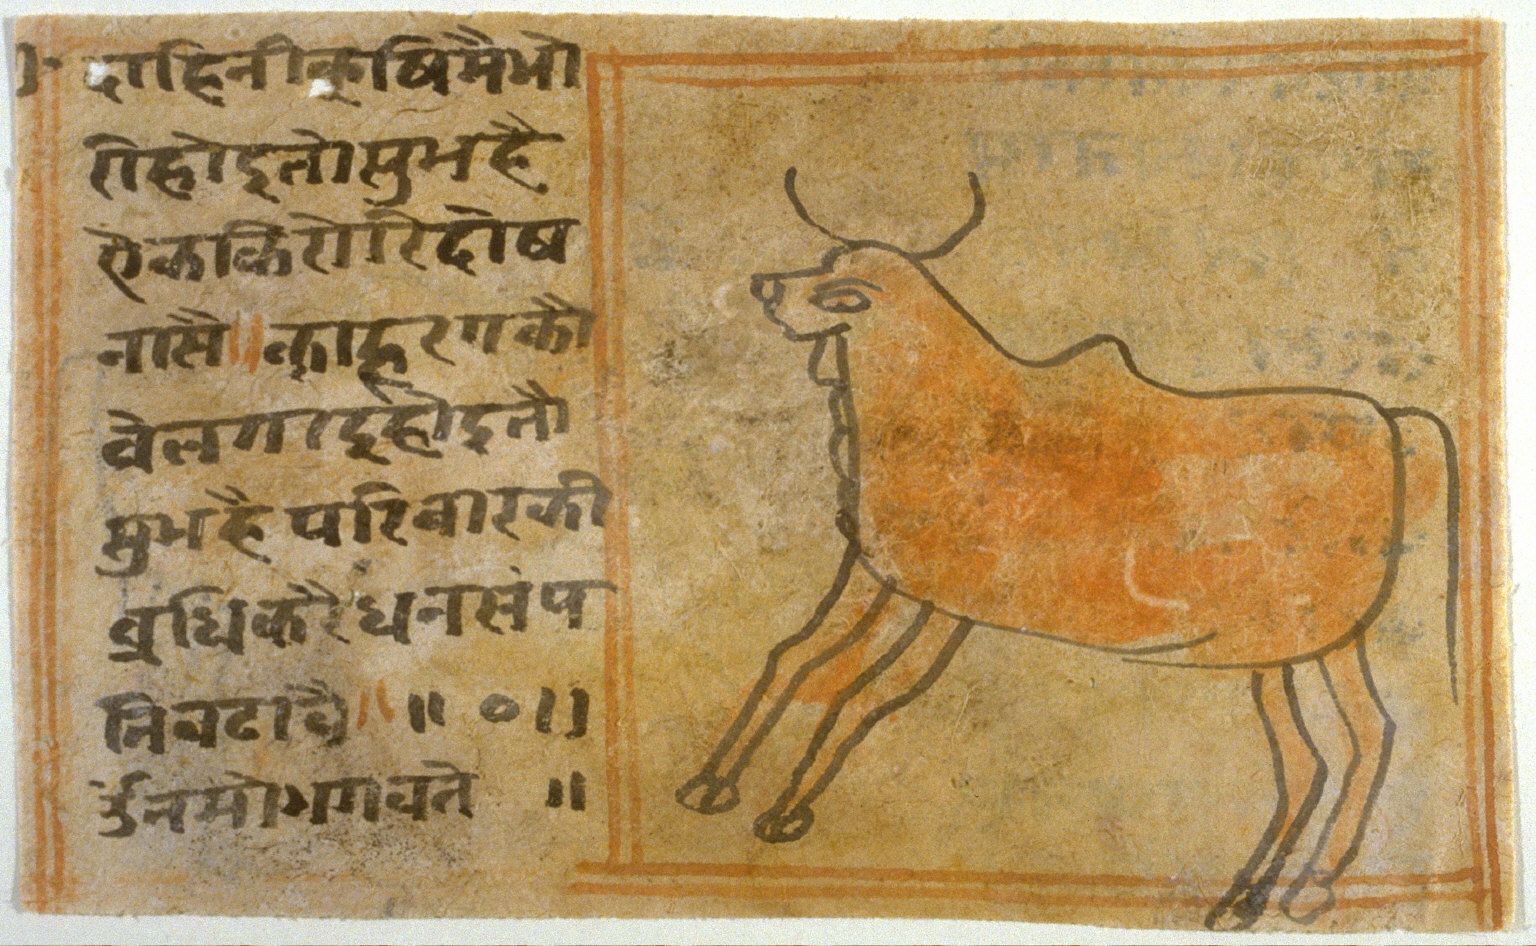 Untitled (cow),fragment on the verso side of a manuscript page